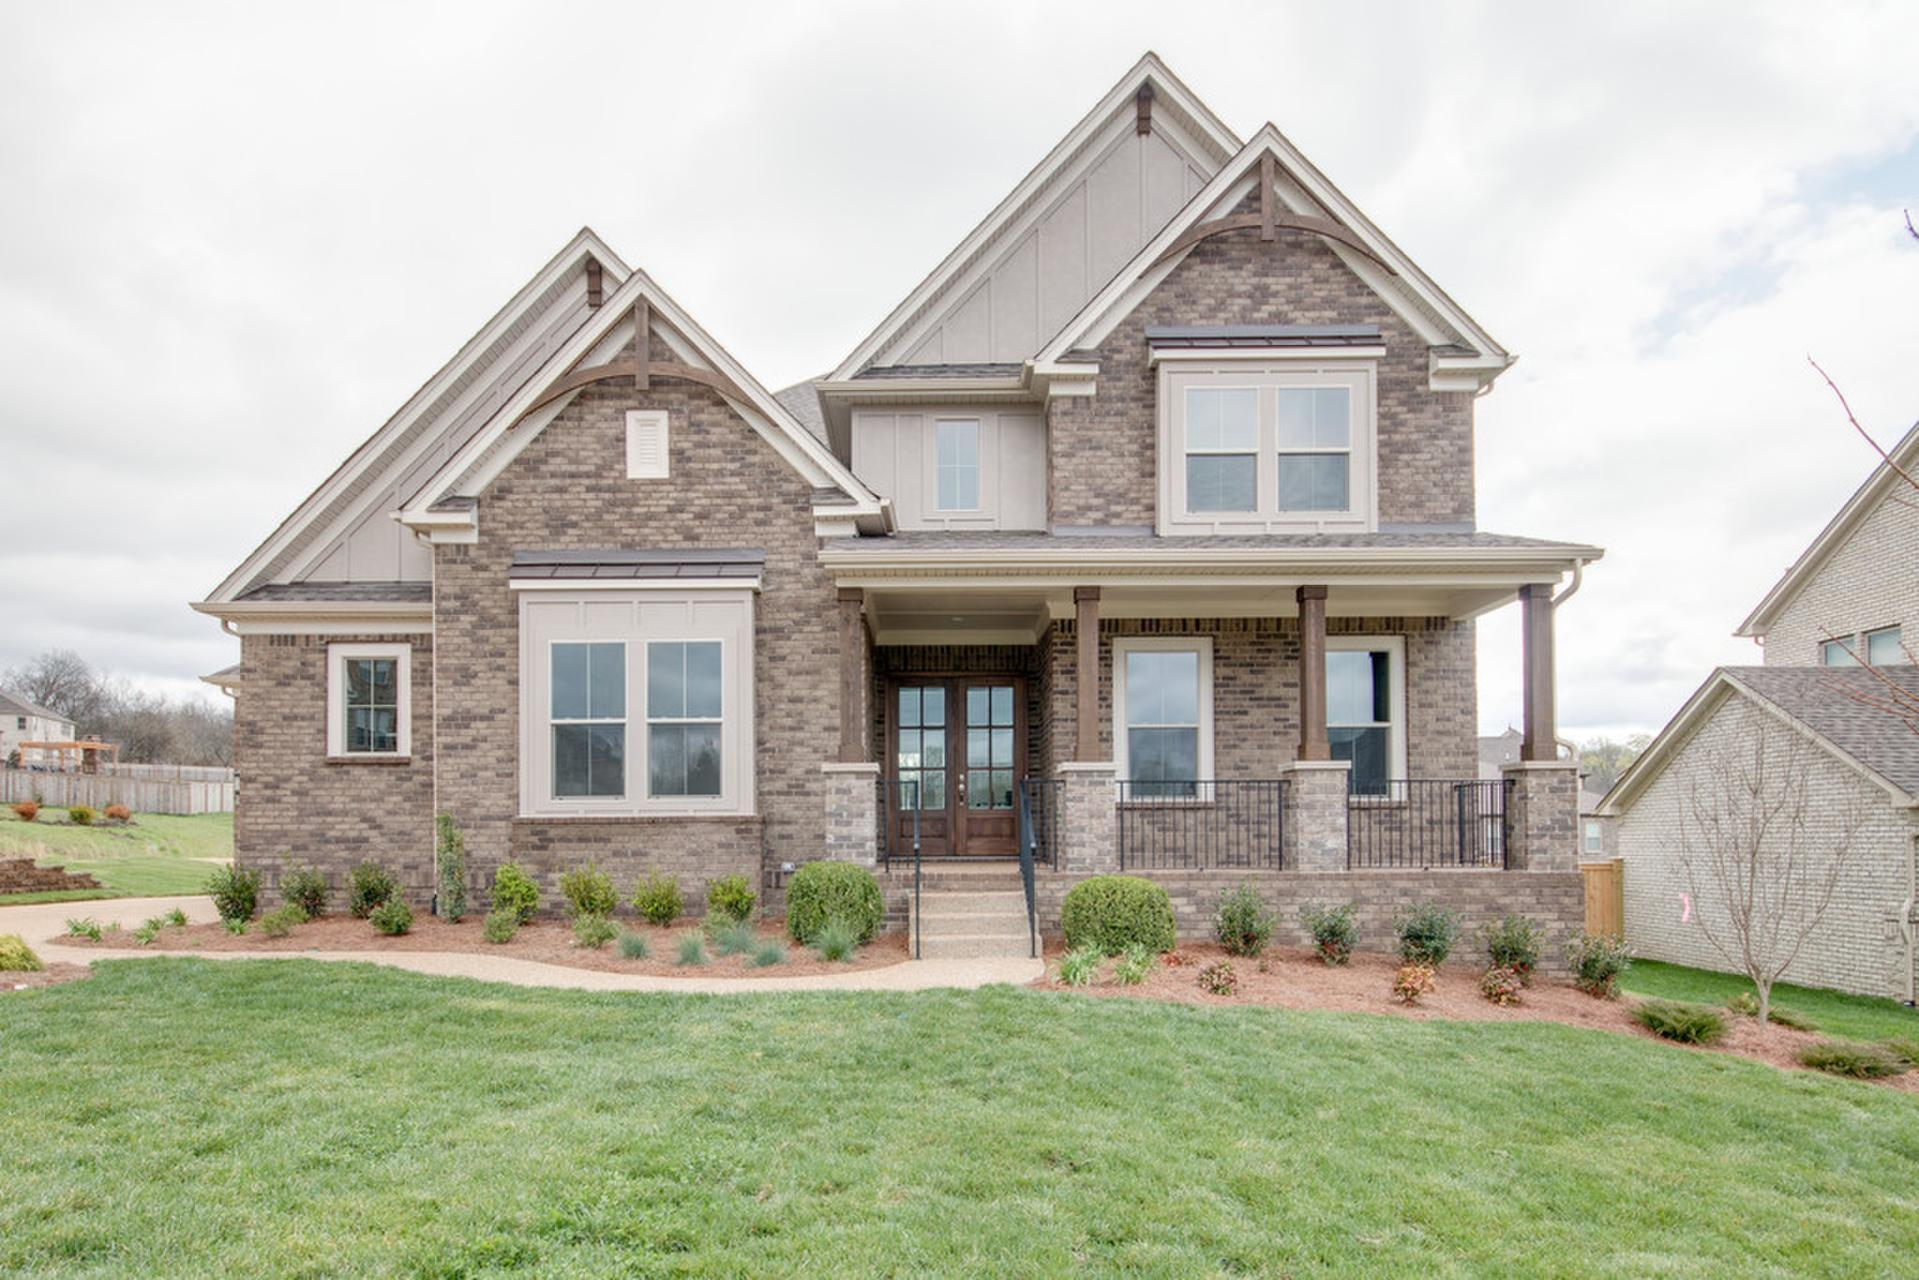 Single Family for Active at Somerville 104 Asher Downs Circle Nolensville, Tennessee 37135 United States